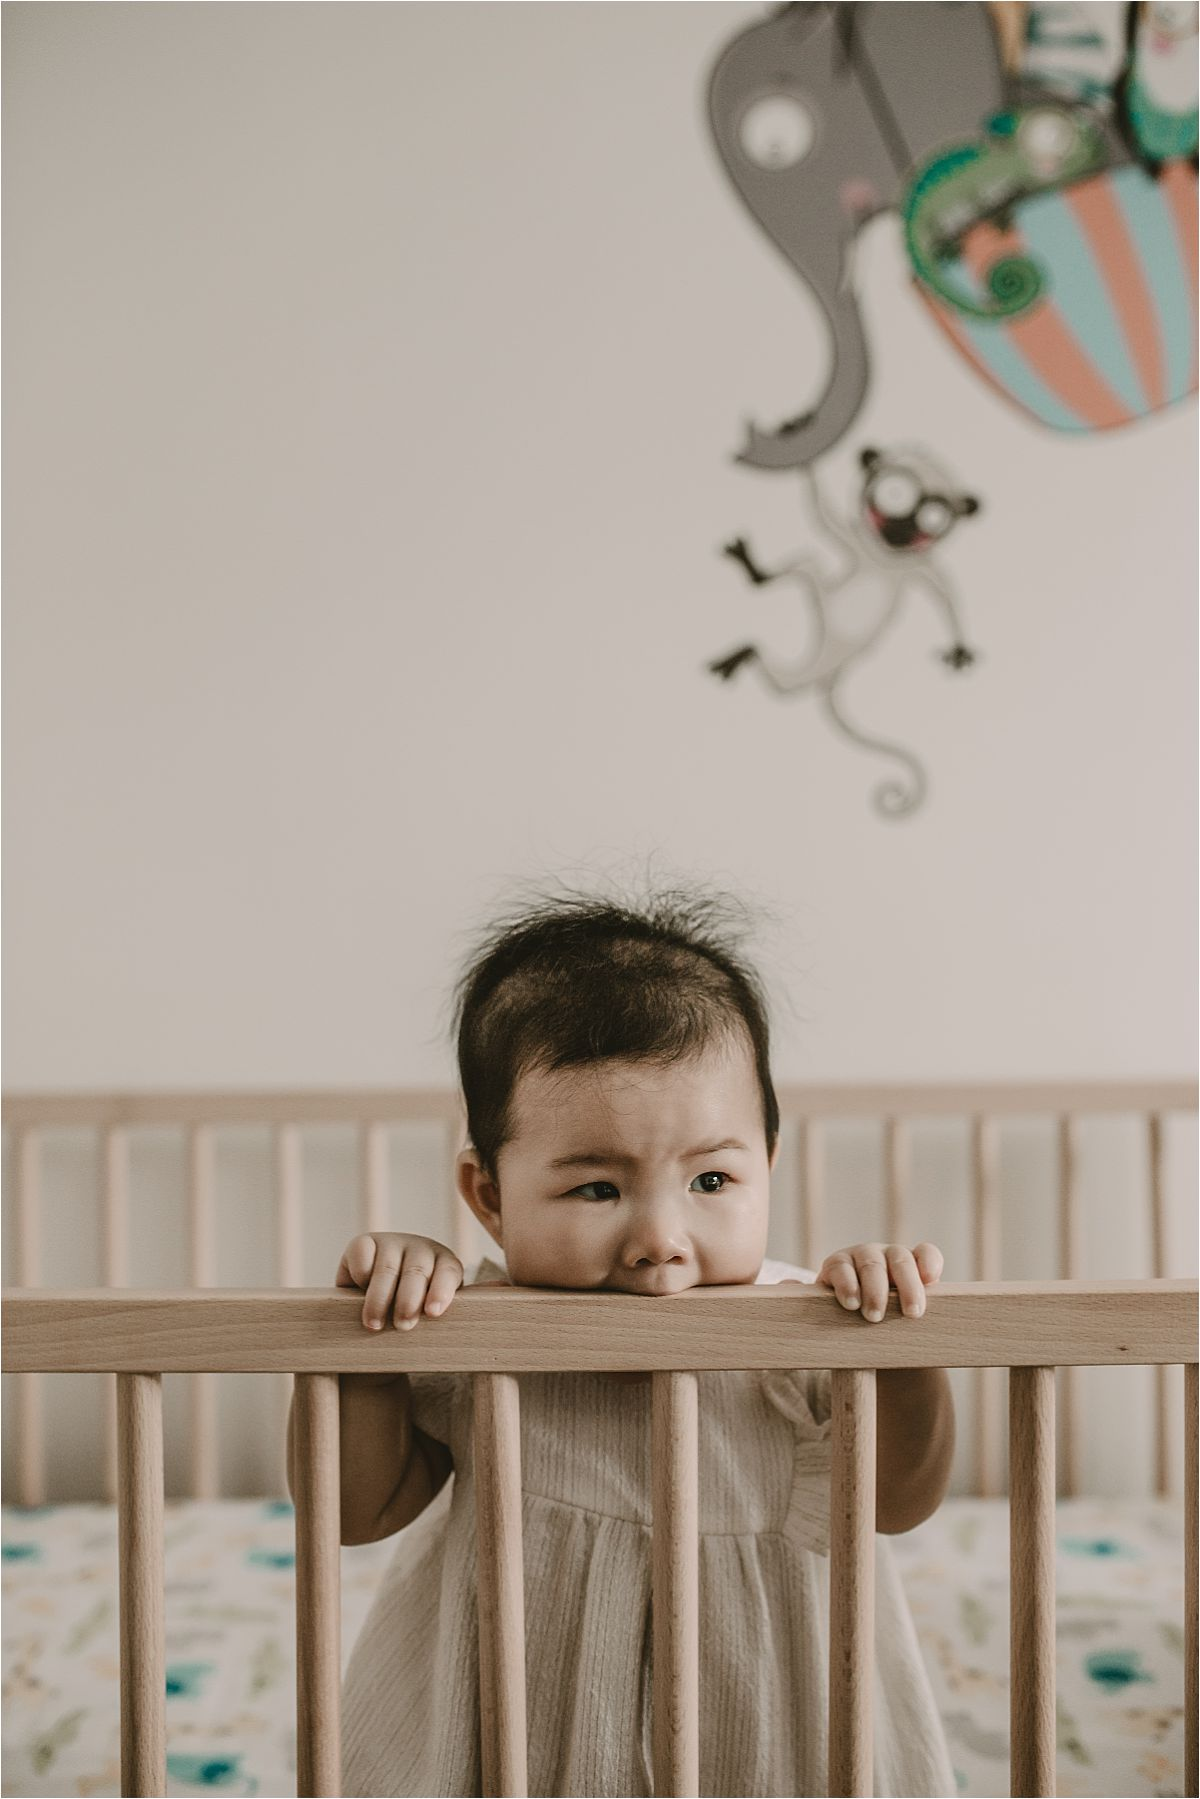 nyc family and newborn photographer baby girl peeks over crib rails in Queens home